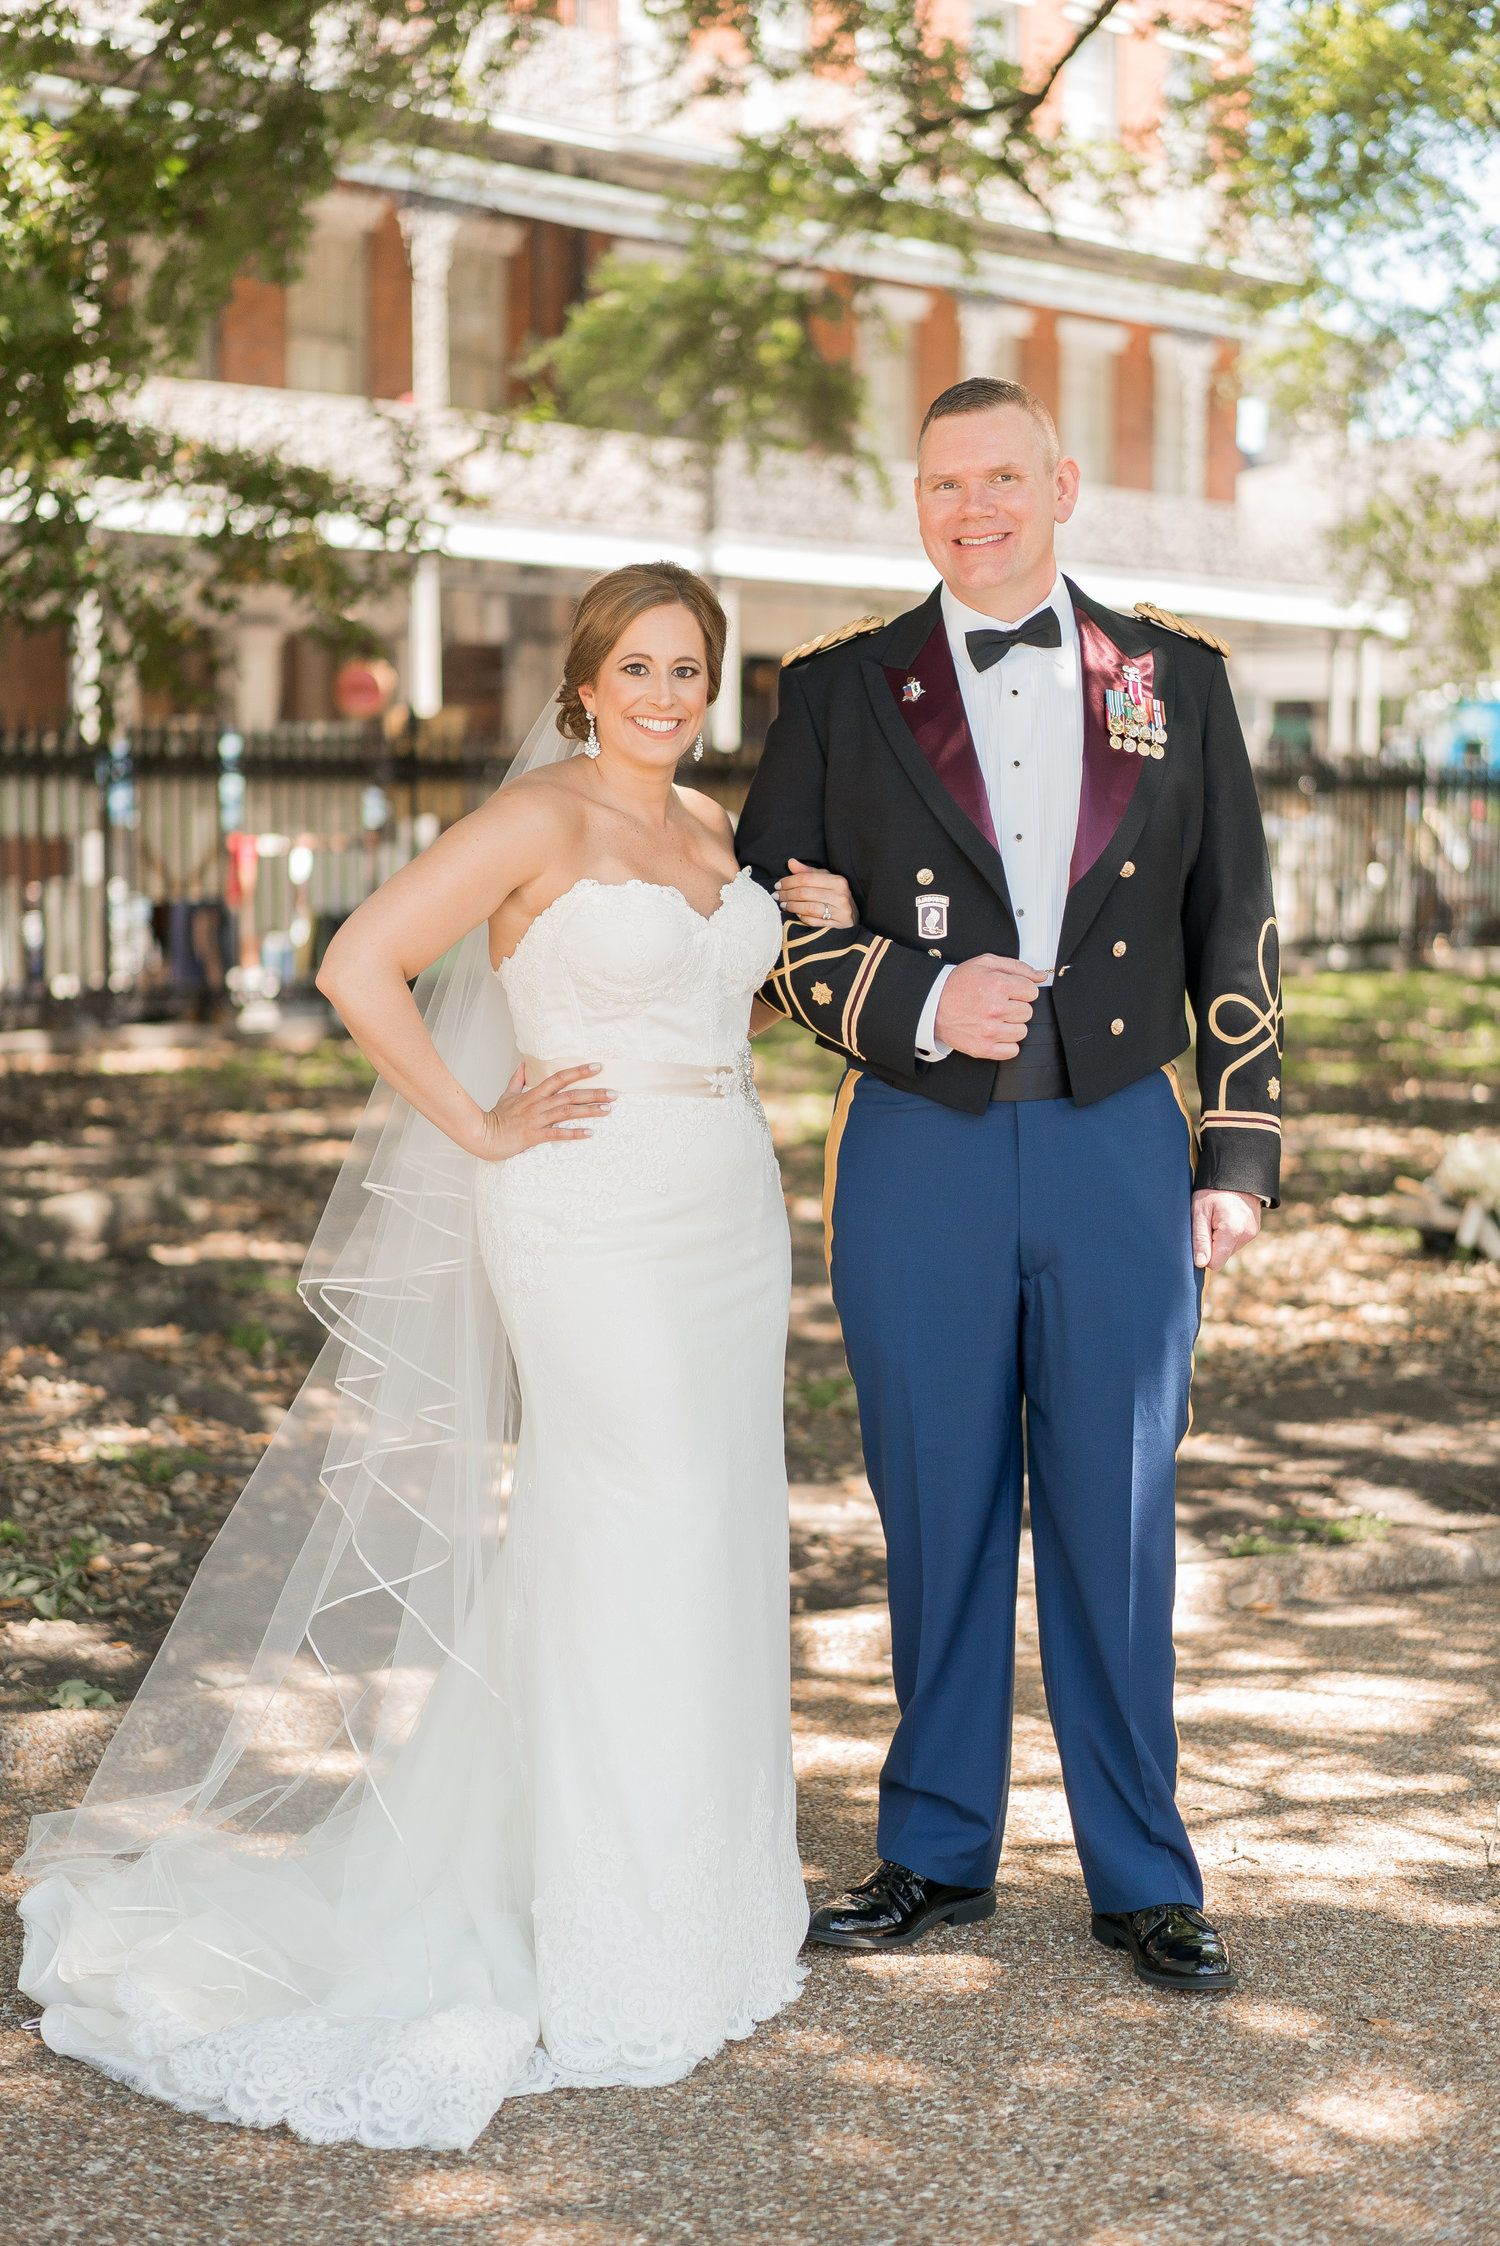 Wedding dress donations for military brides  A Navy  Gold New Orleans Military Wedding  Military Wedding